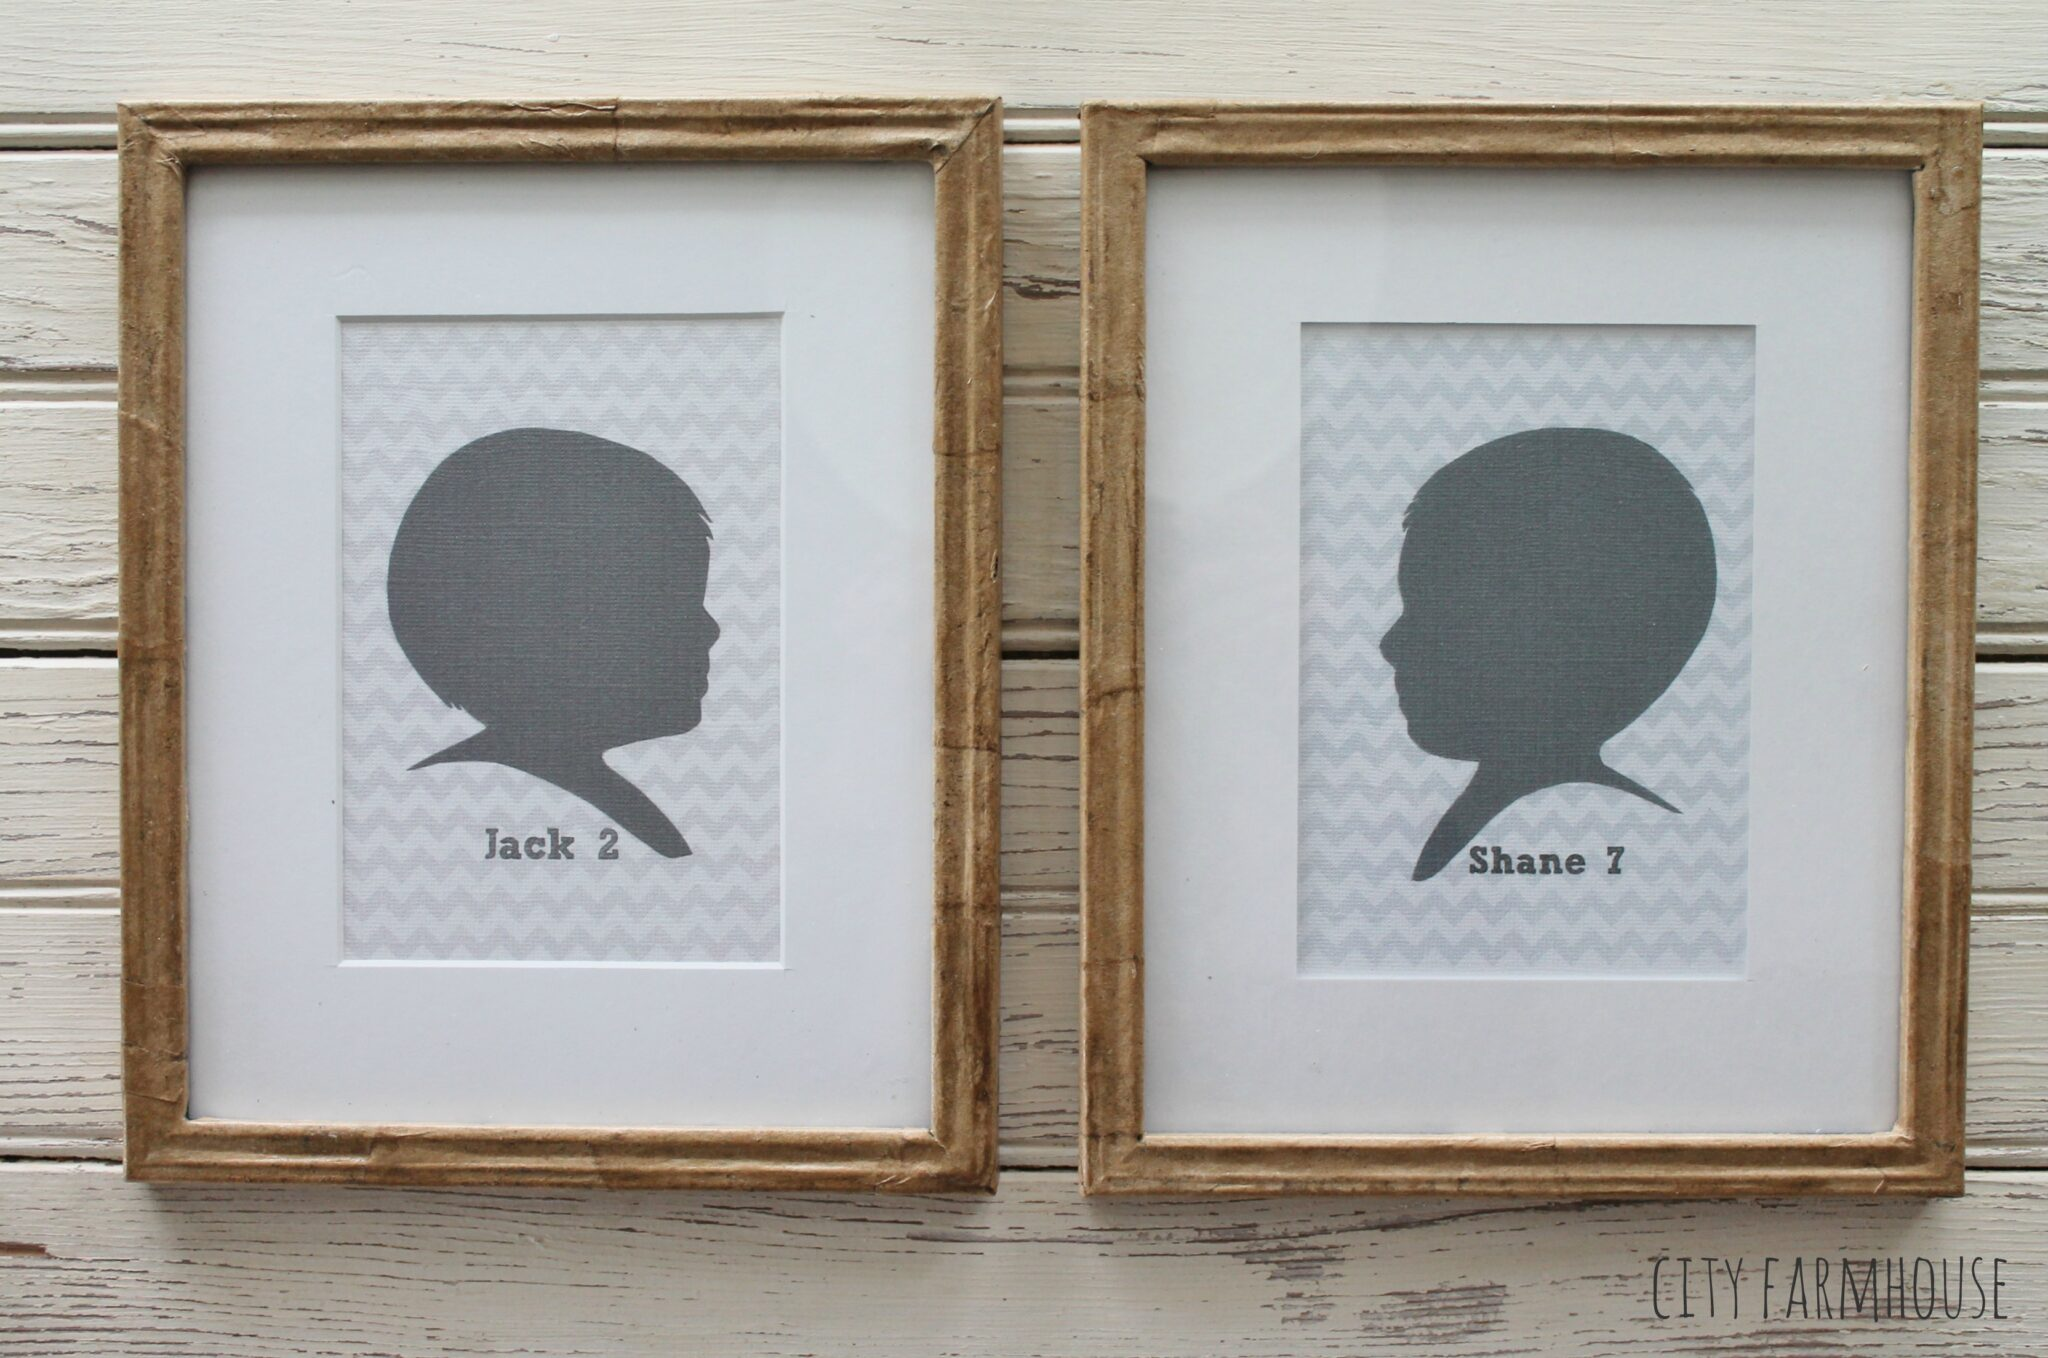 DIY Craft Paper Frames, Silhouettes & Family - City Farmhouse